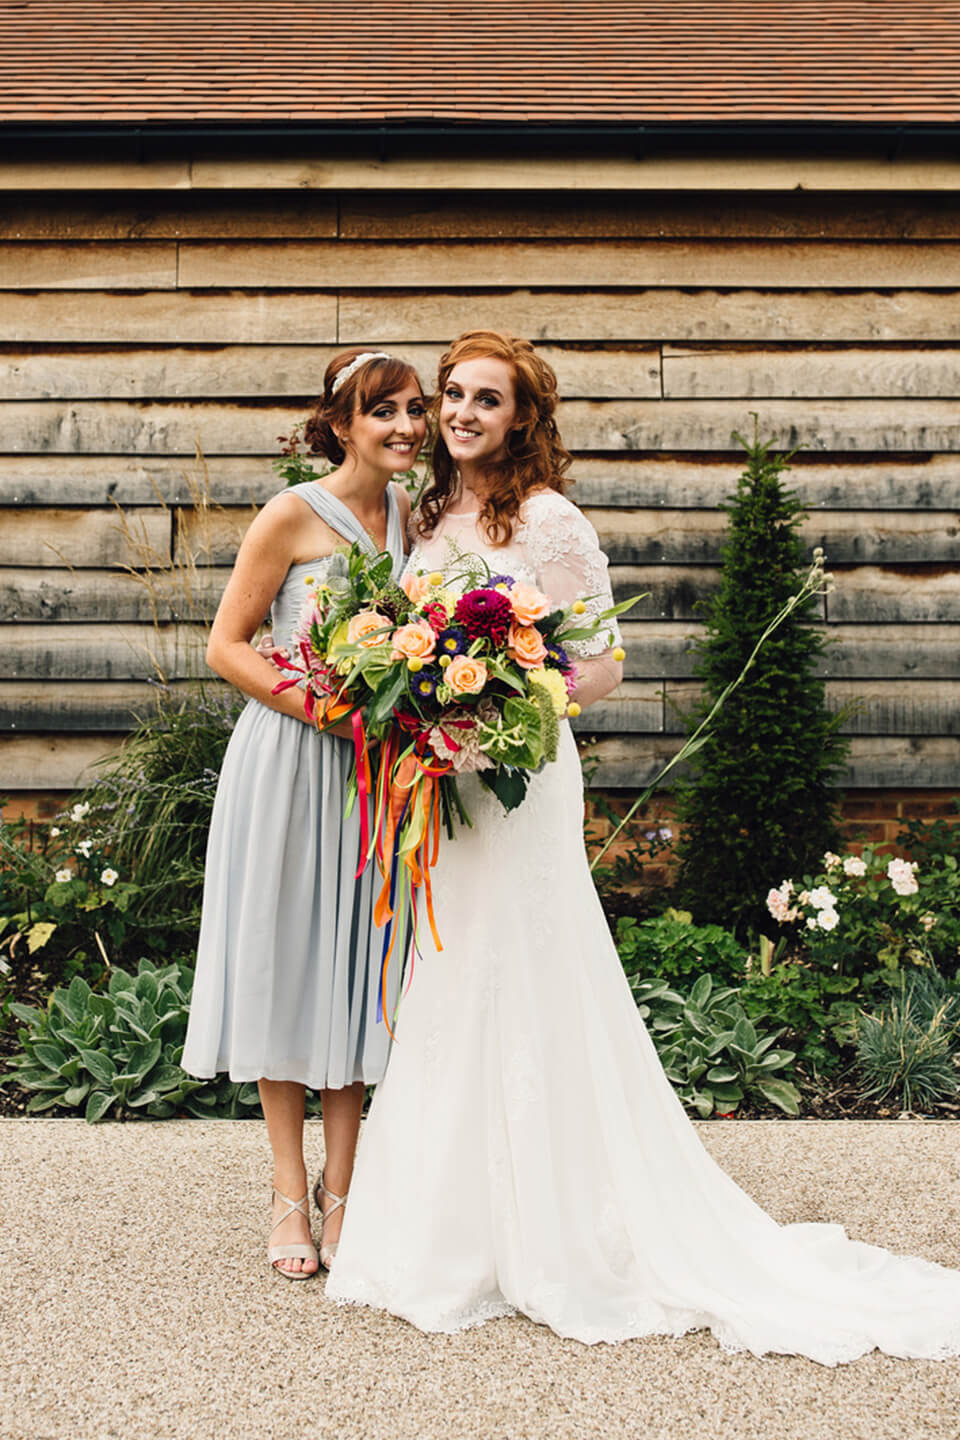 The bridesmaid wore a pale blue knee length bridesmaid dress for this festival themed wedding